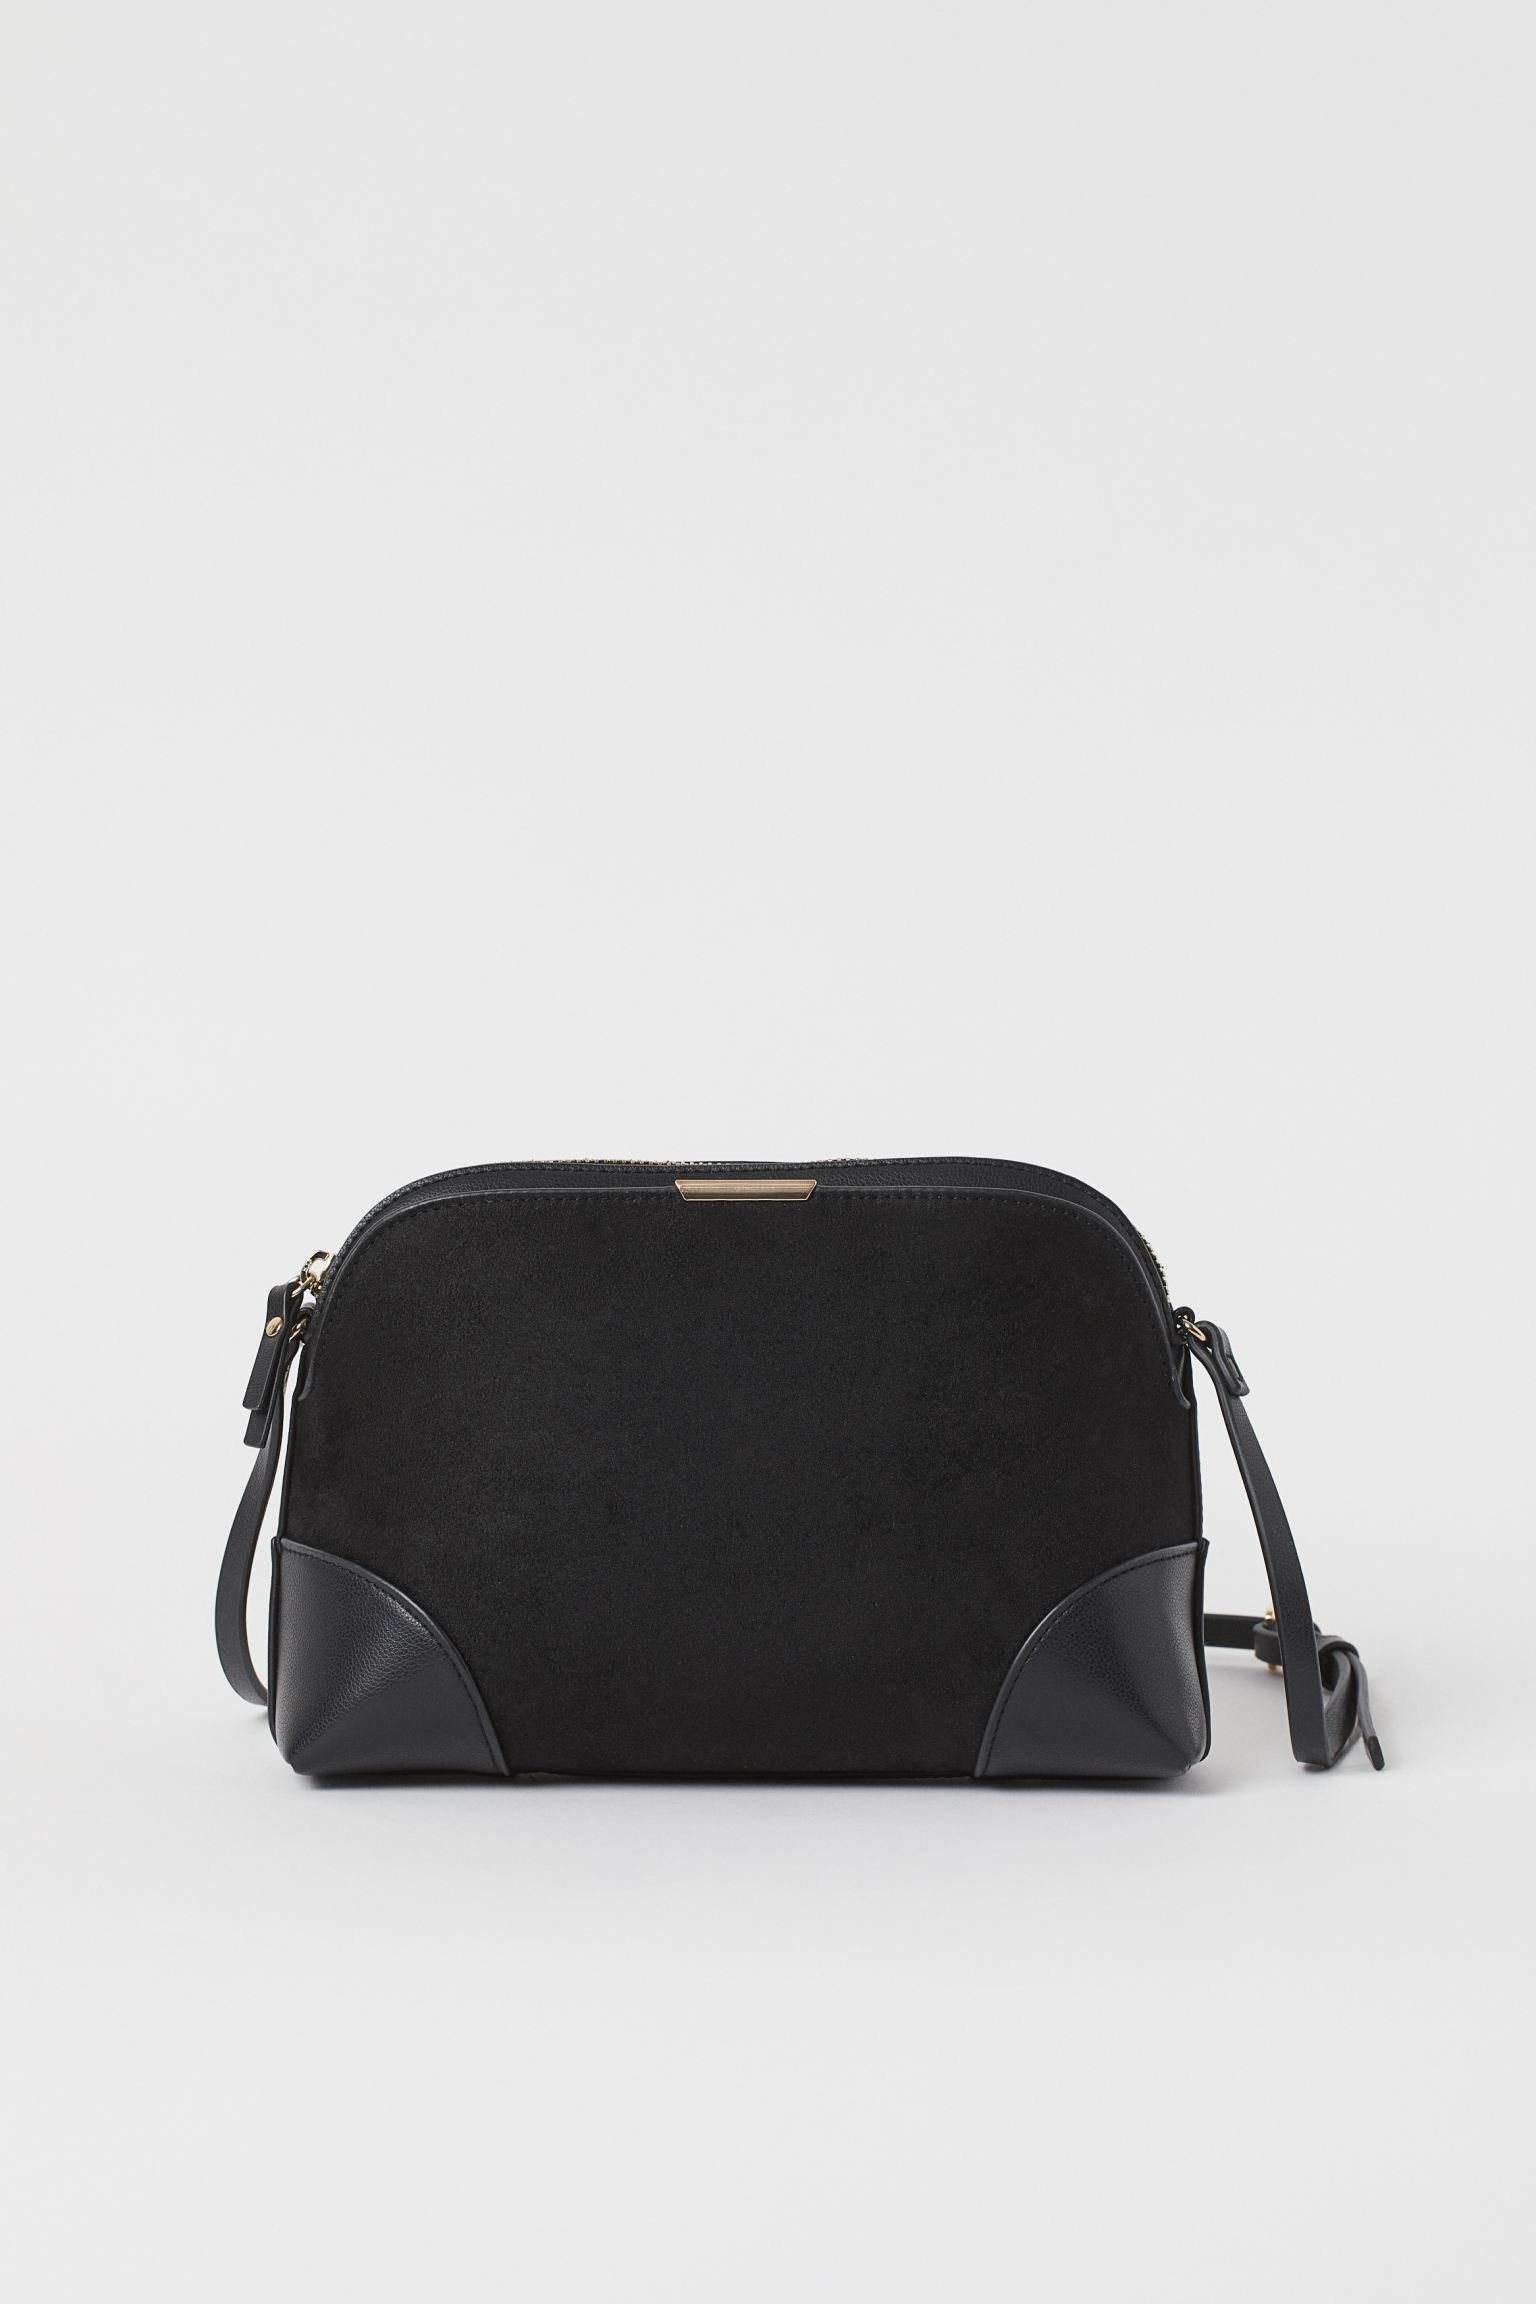 Small shoulder bag in synthetic leather and suede with zipper at the top and adjustable thin strap. An outer compartment with magnetic closure and an inner compartment with zipper.